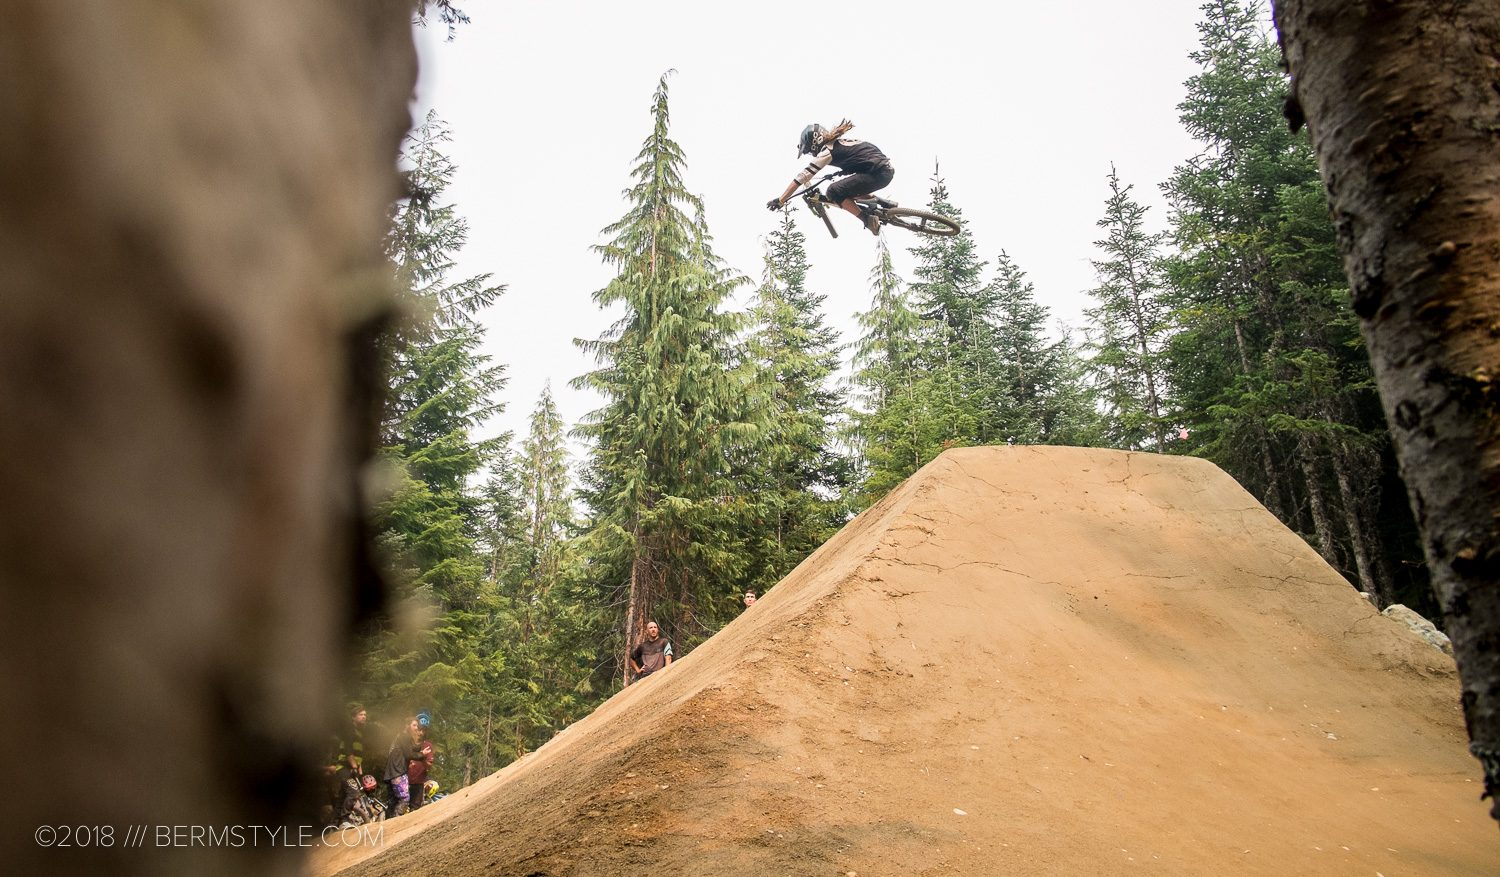 Whistler Bike Park: Riding the Dirt Merchant Rebuild